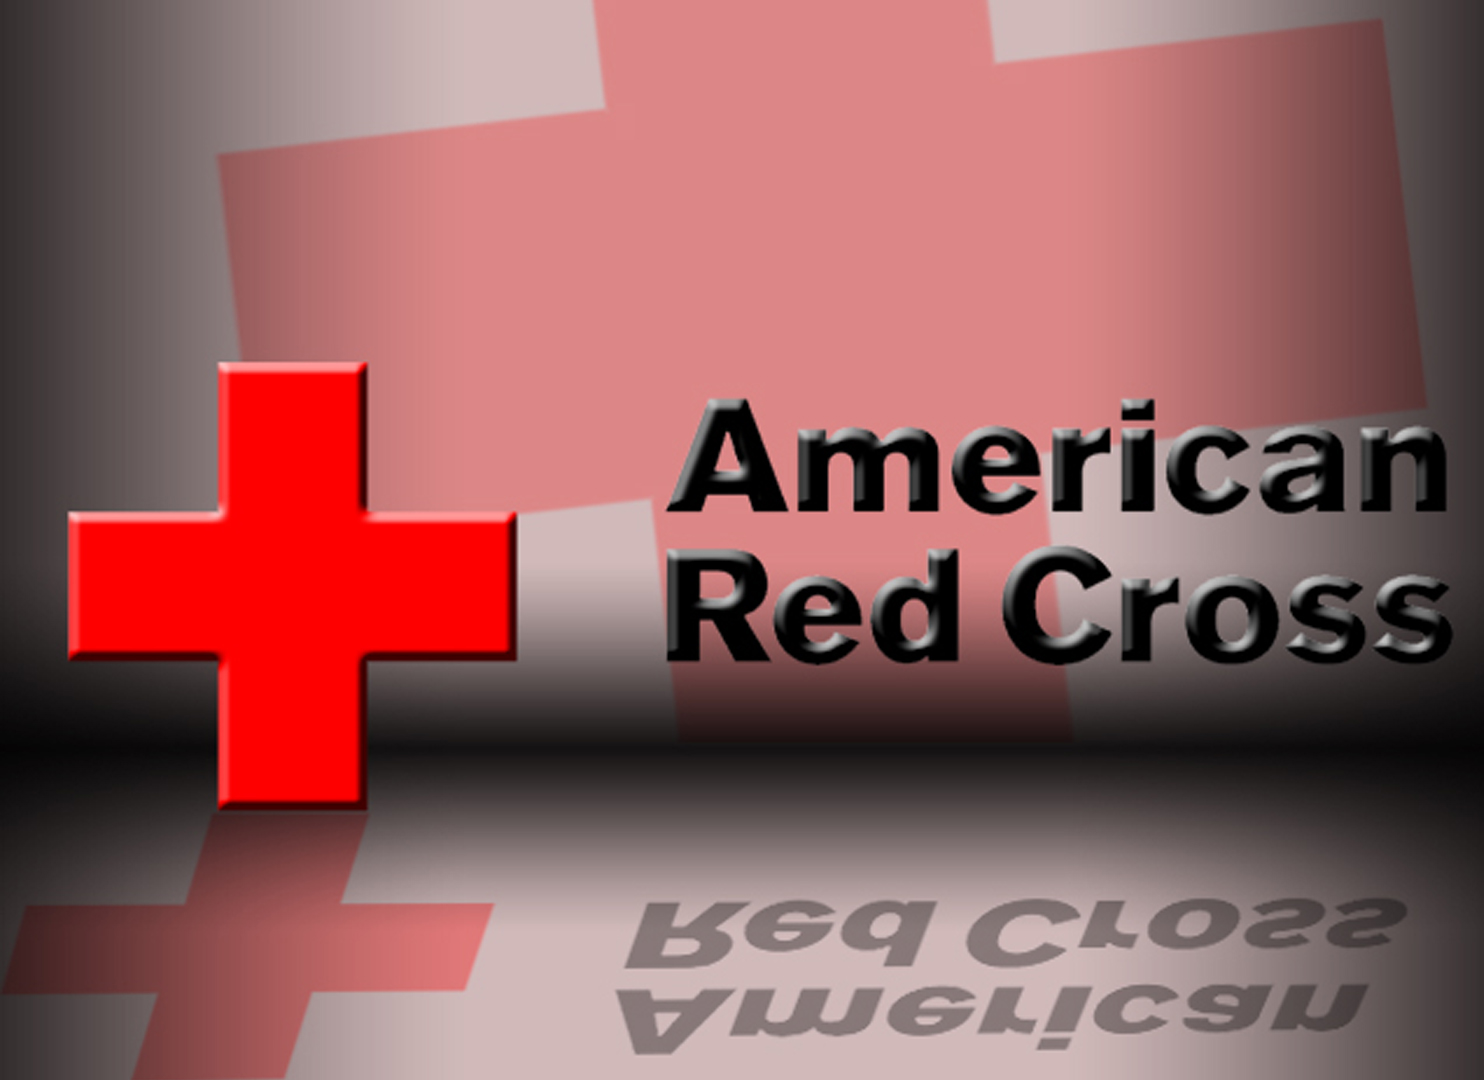 Red Cross_1554862549483.jpg.jpg